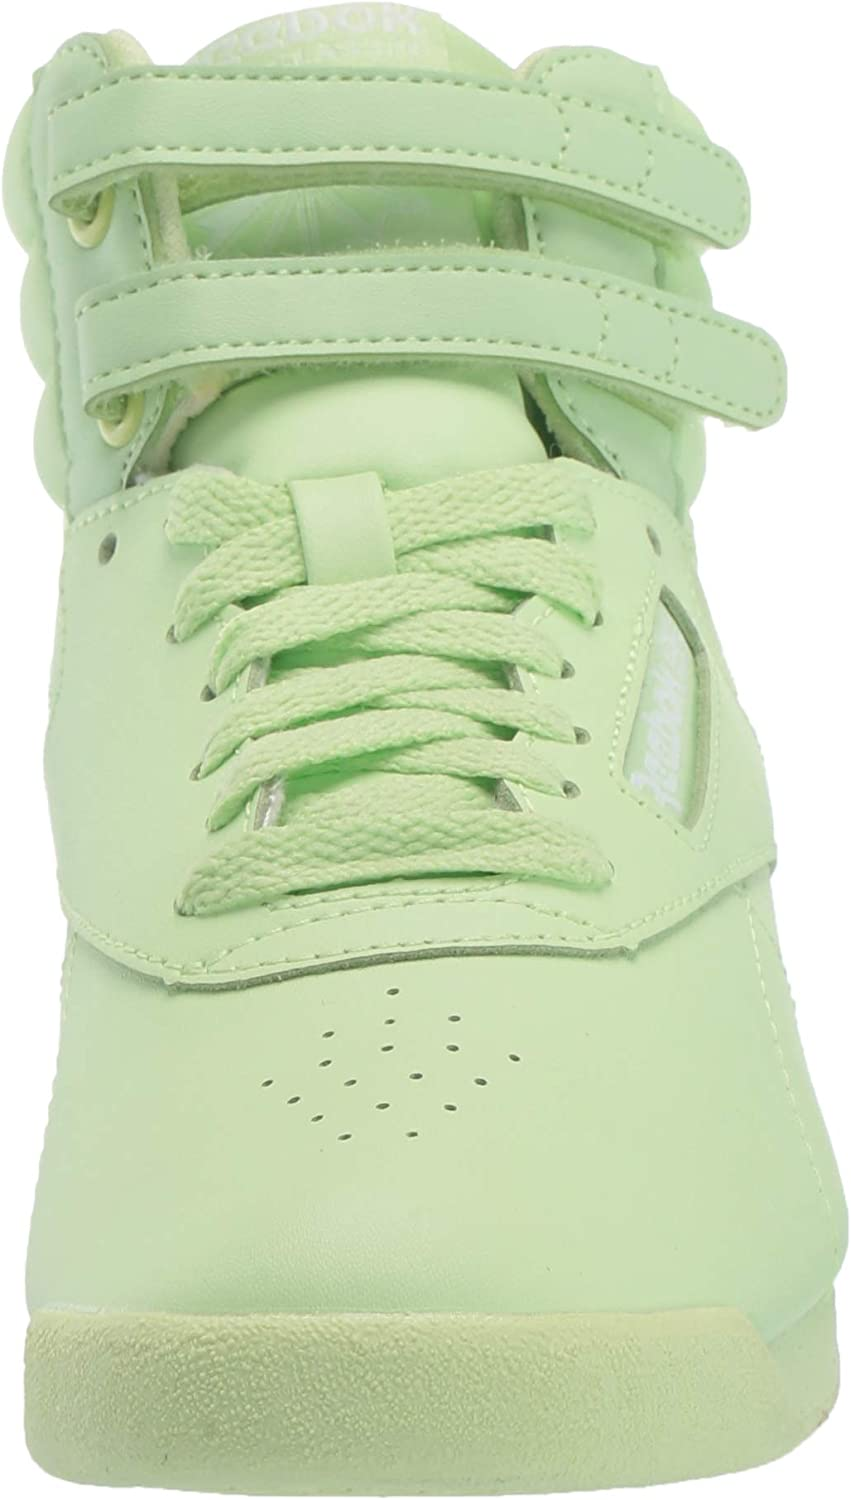 Reebok Women's F/S HI Colors Sneaker Lime Glow/White